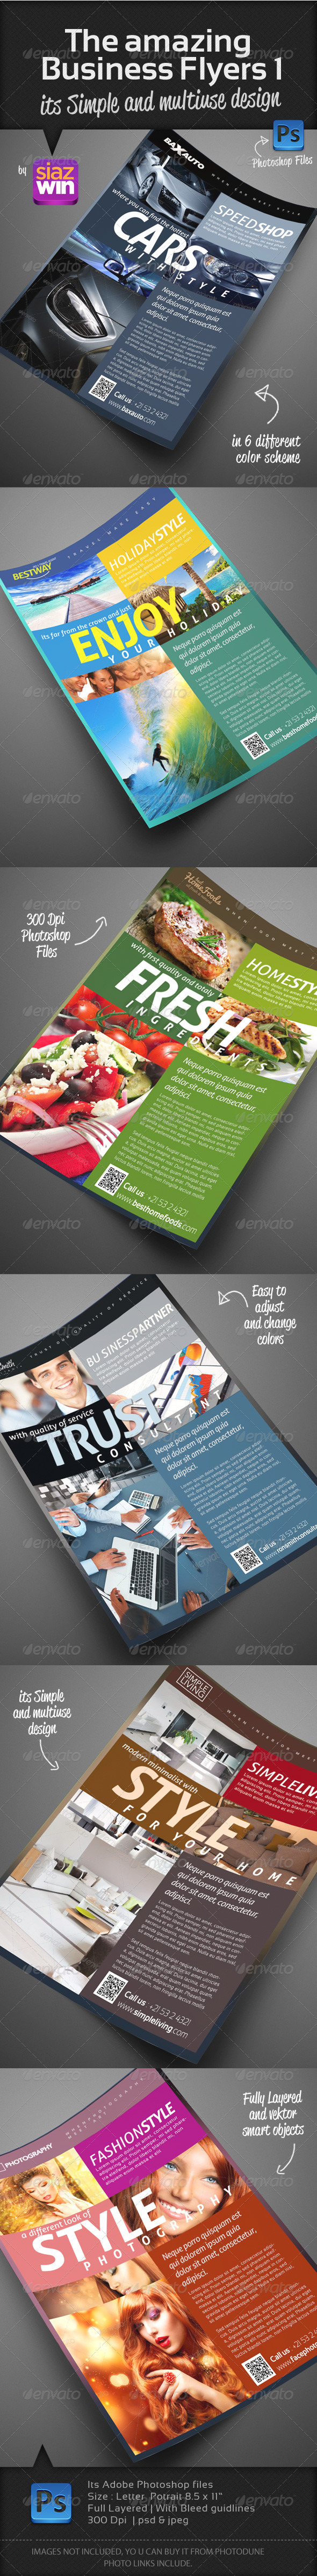 GraphicRiver The Amazing Business Flyers 1 3098658